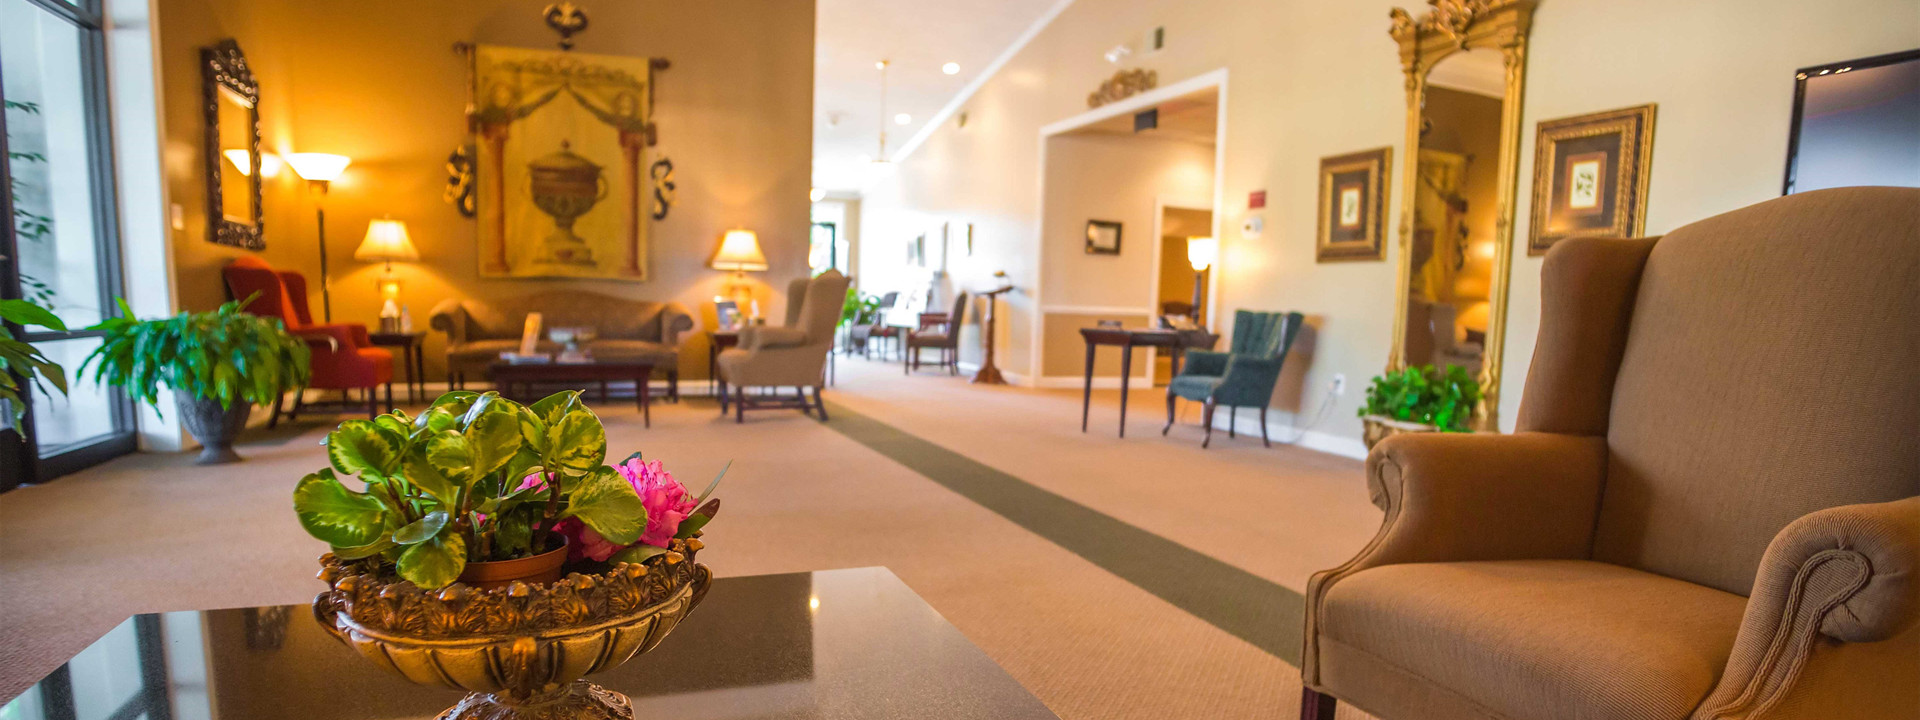 Services | Cavin-Cook Funeral Home & Crematory